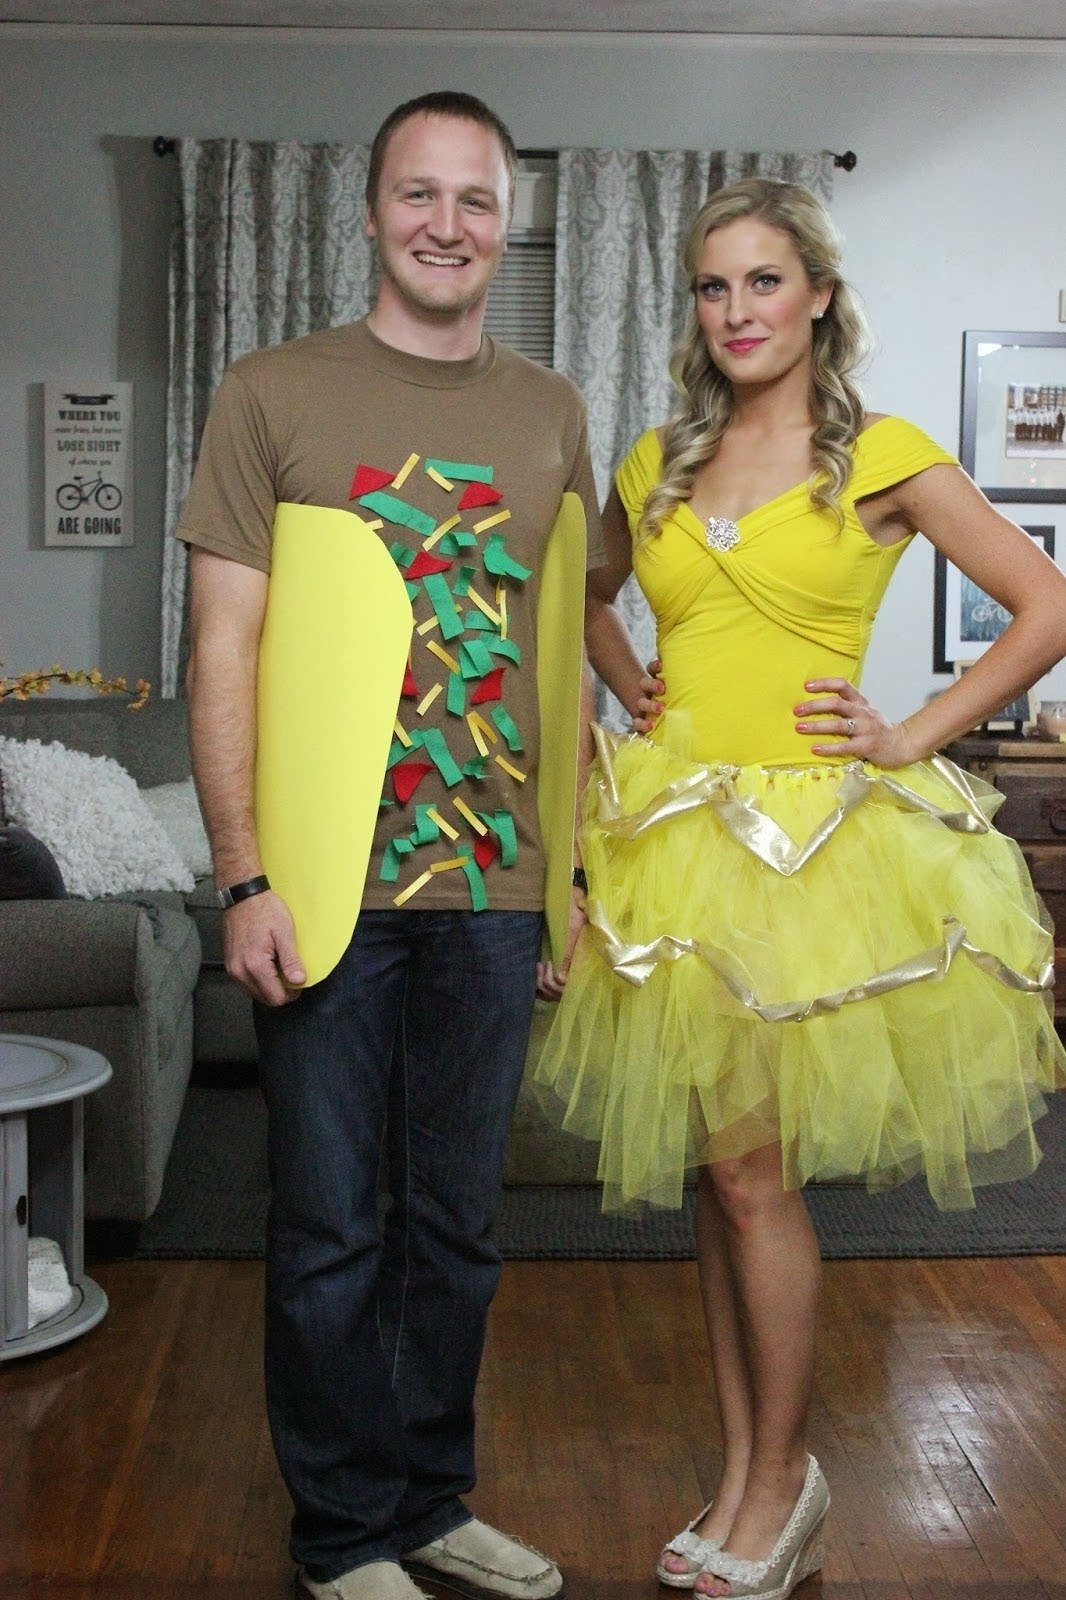 10 Fashionable Best Couples Halloween Costume Ideas 57 couples diy costumes 12 diy halloween costumes for couples 6